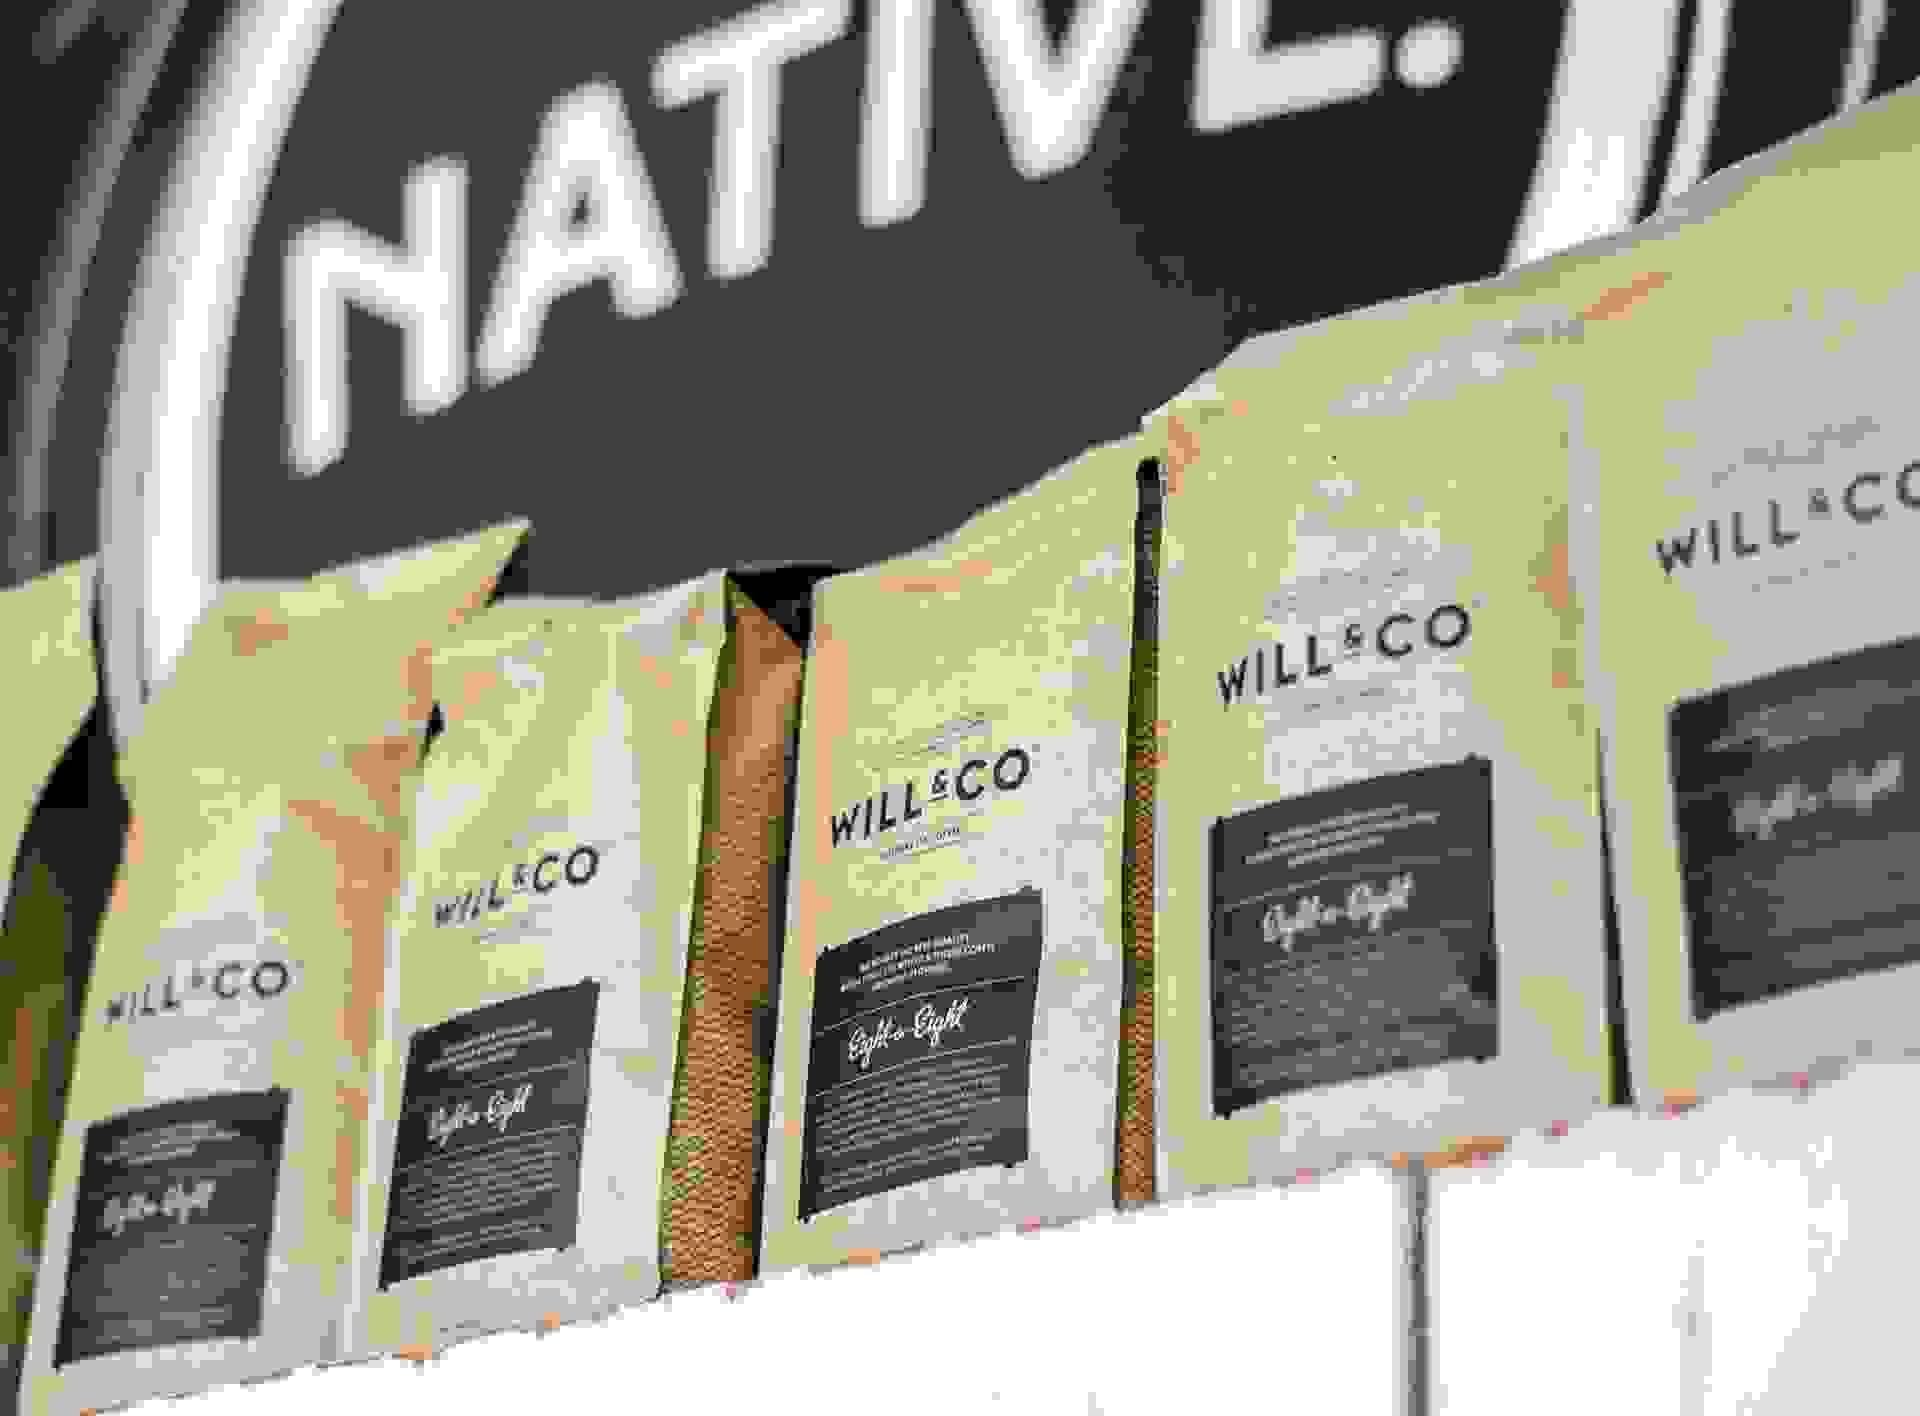 Will & Co Coffee at Native Ulladulla